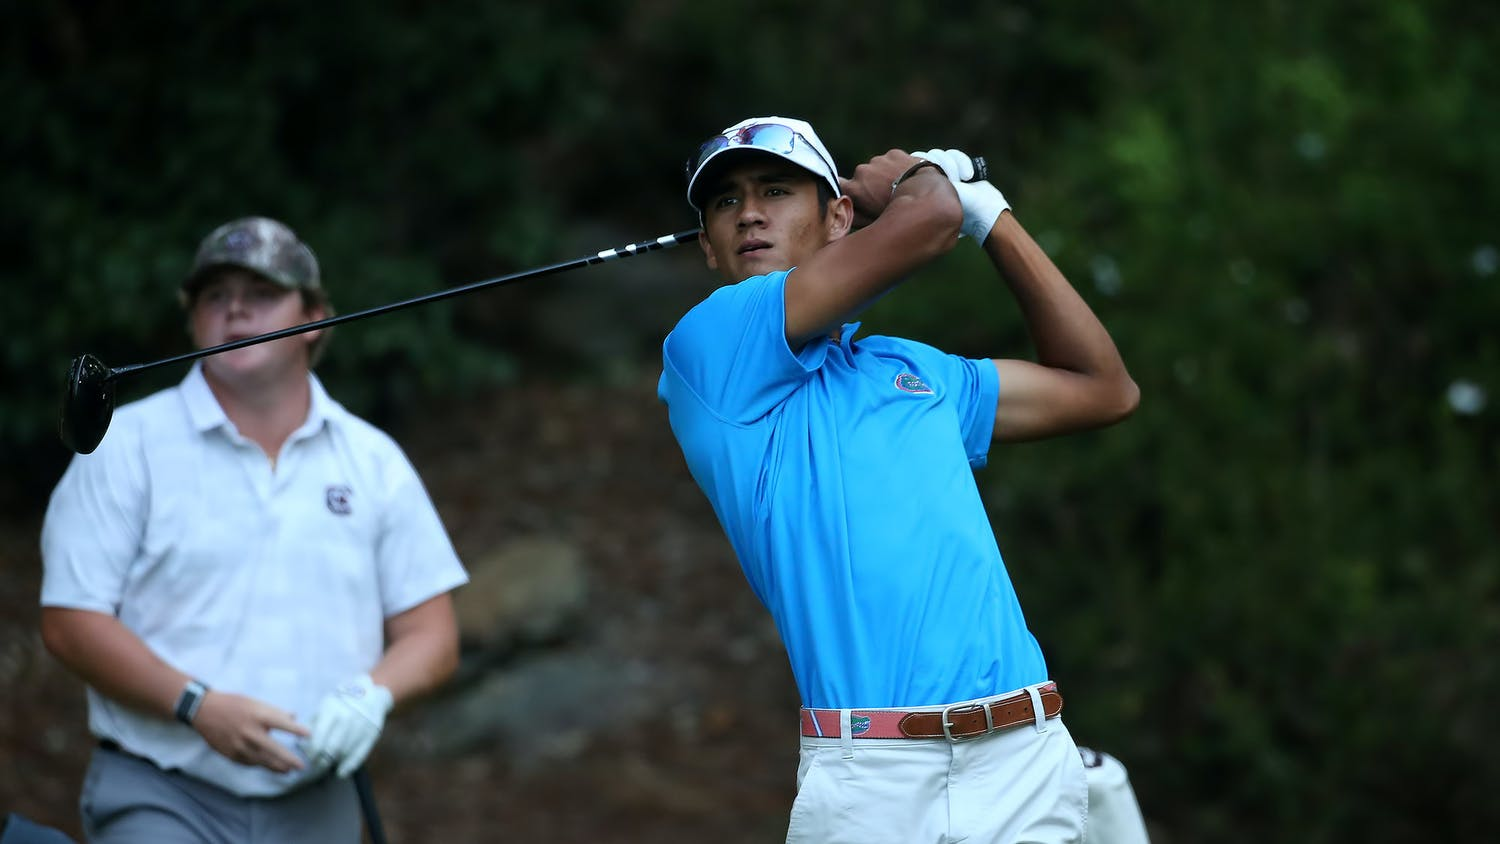 Florida's Ricky Castillo competes during the SEC Match Play Championships at Shoal Creek Club in Birmingham, Alabama.